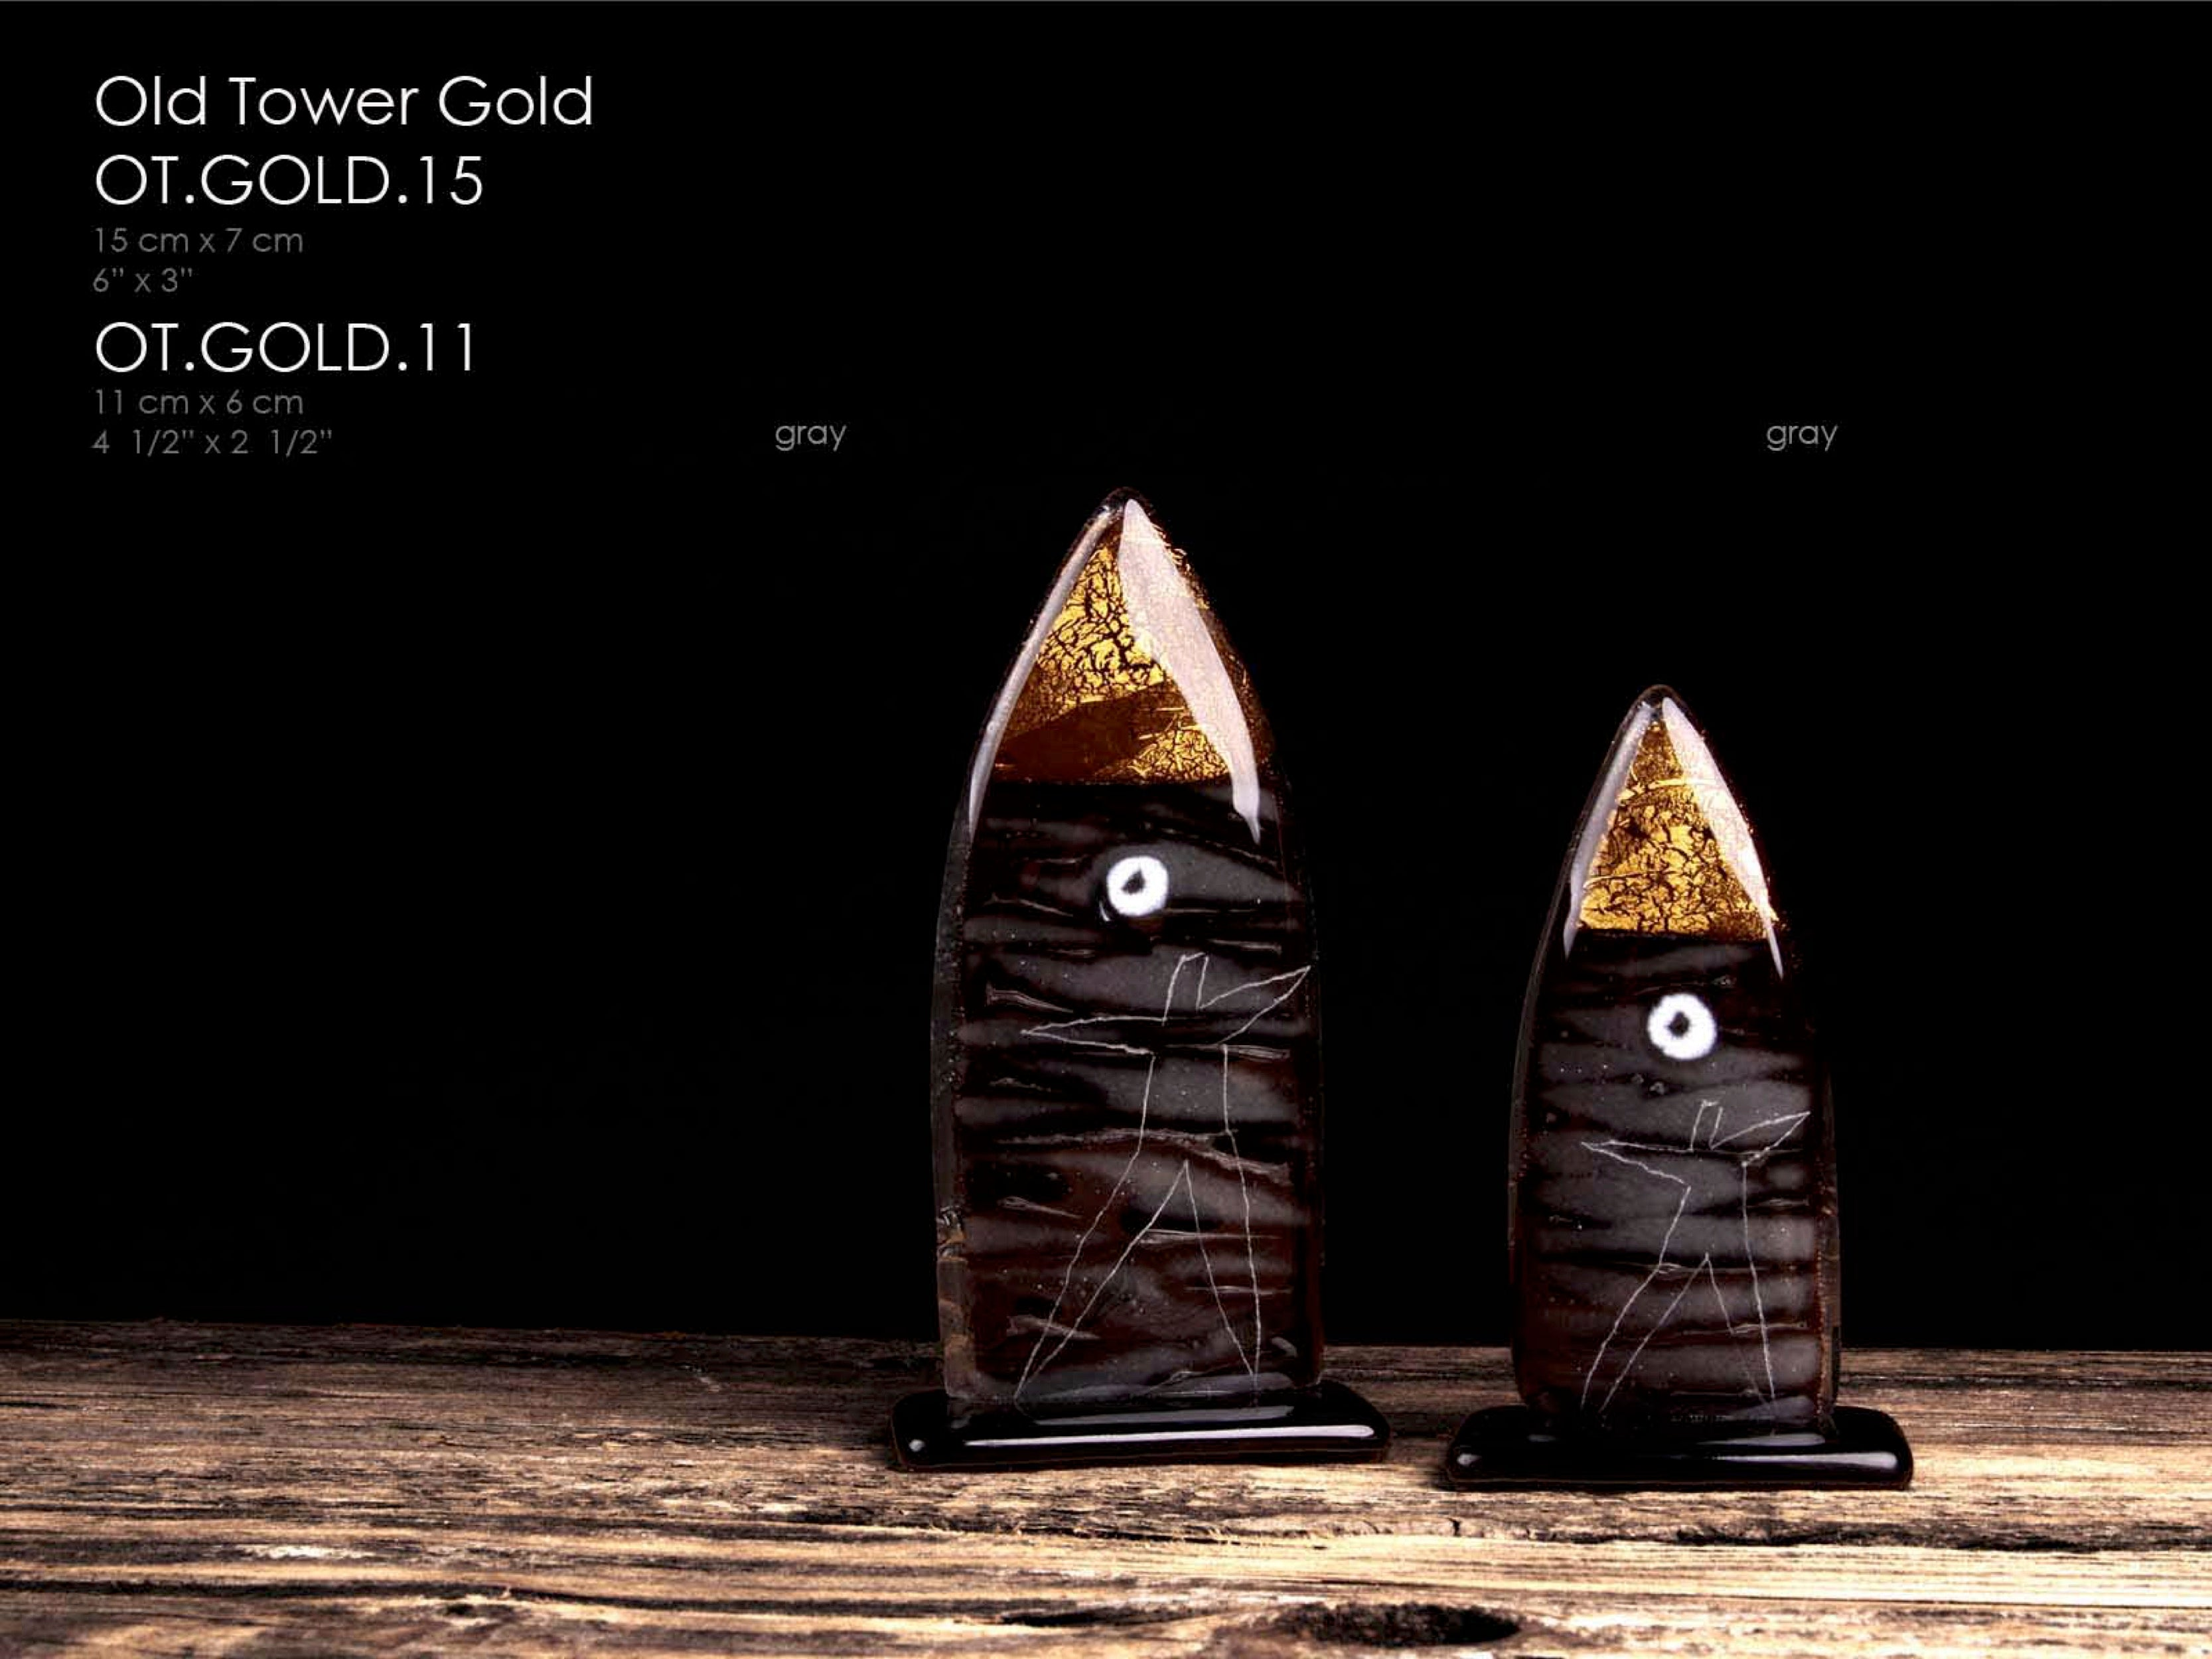 Old tower Gold 23 3/4 carat